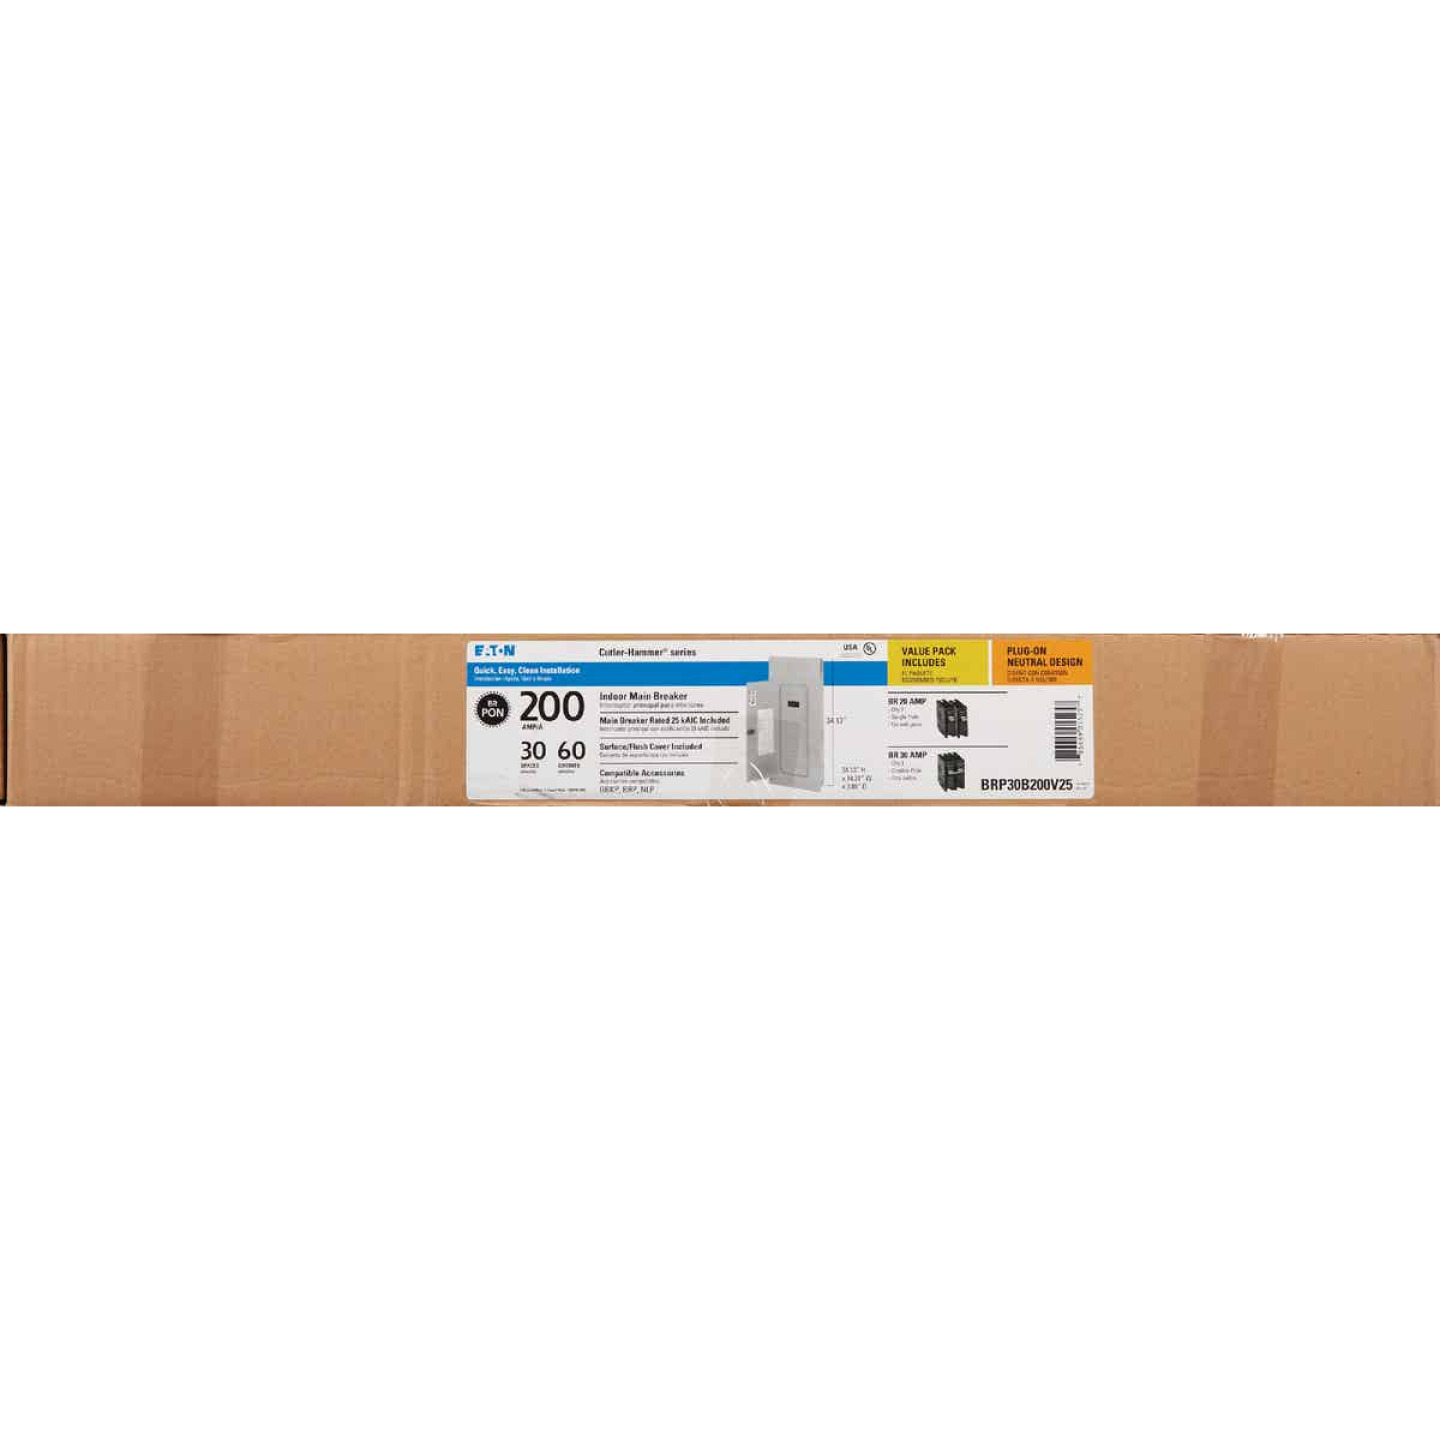 Eaton BR 200A 30-Space 60-Circuit Indoor Load Center Value Pack Image 2